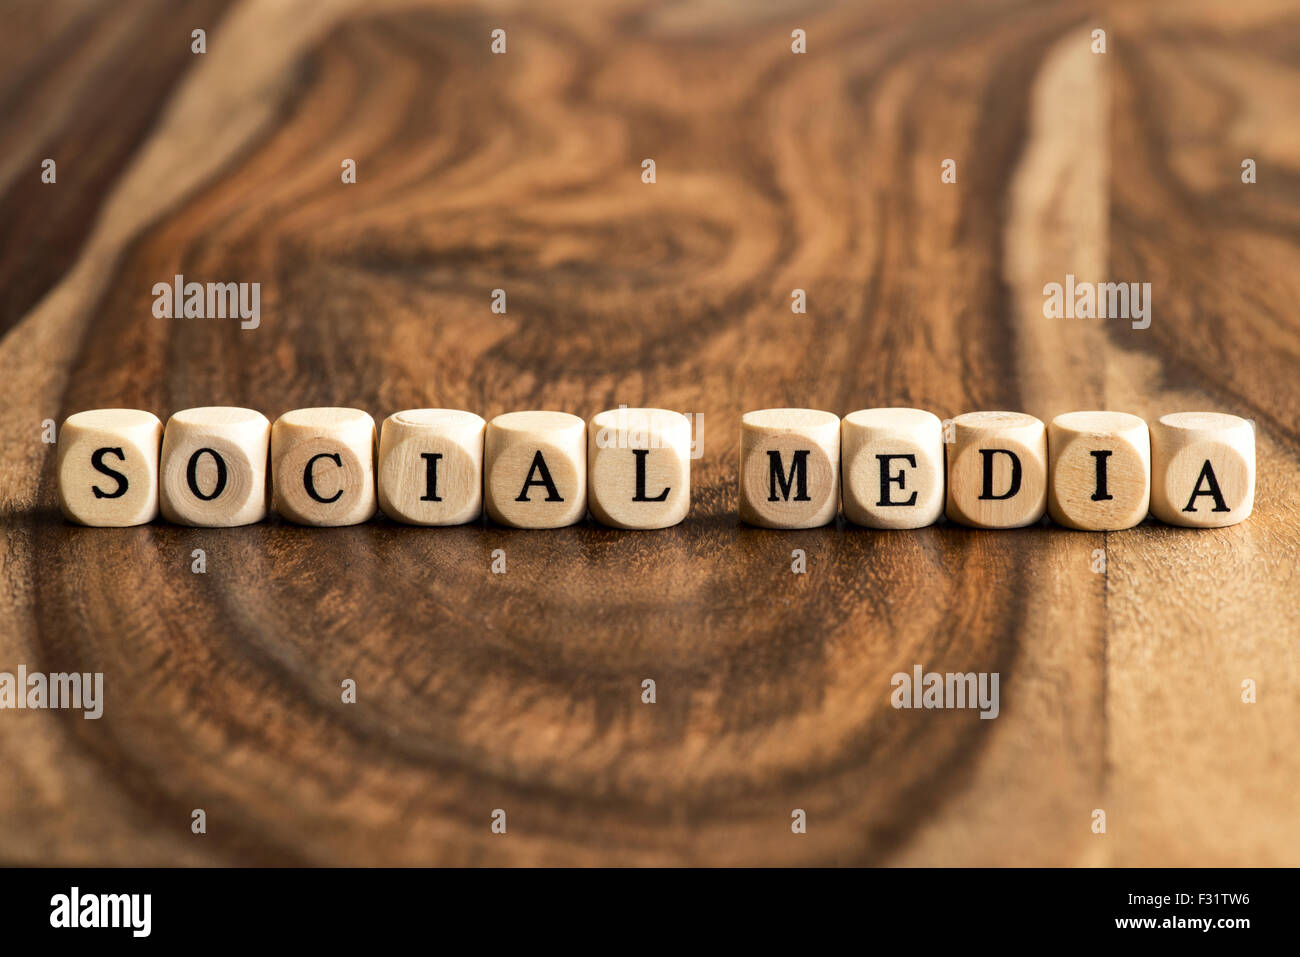 SOCIAL MEDIA word background on wood blocks - Stock Image